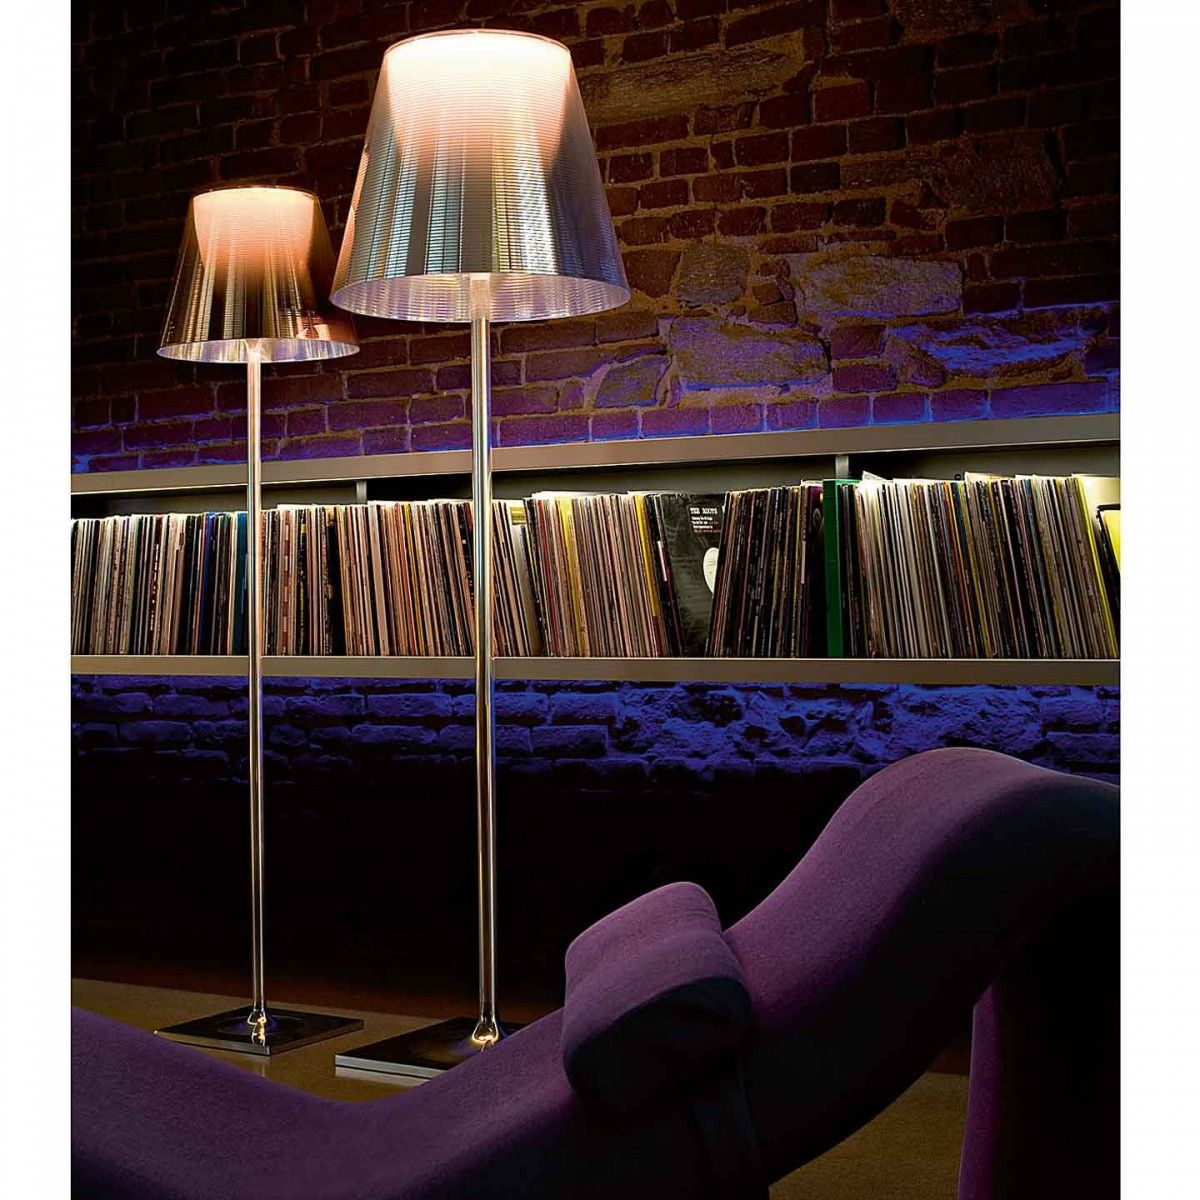 Ktribe f2 floor lamp by philippe starck for flos 21st century ktribe f2 floor lamp by philippe starck for flos aloadofball Choice Image